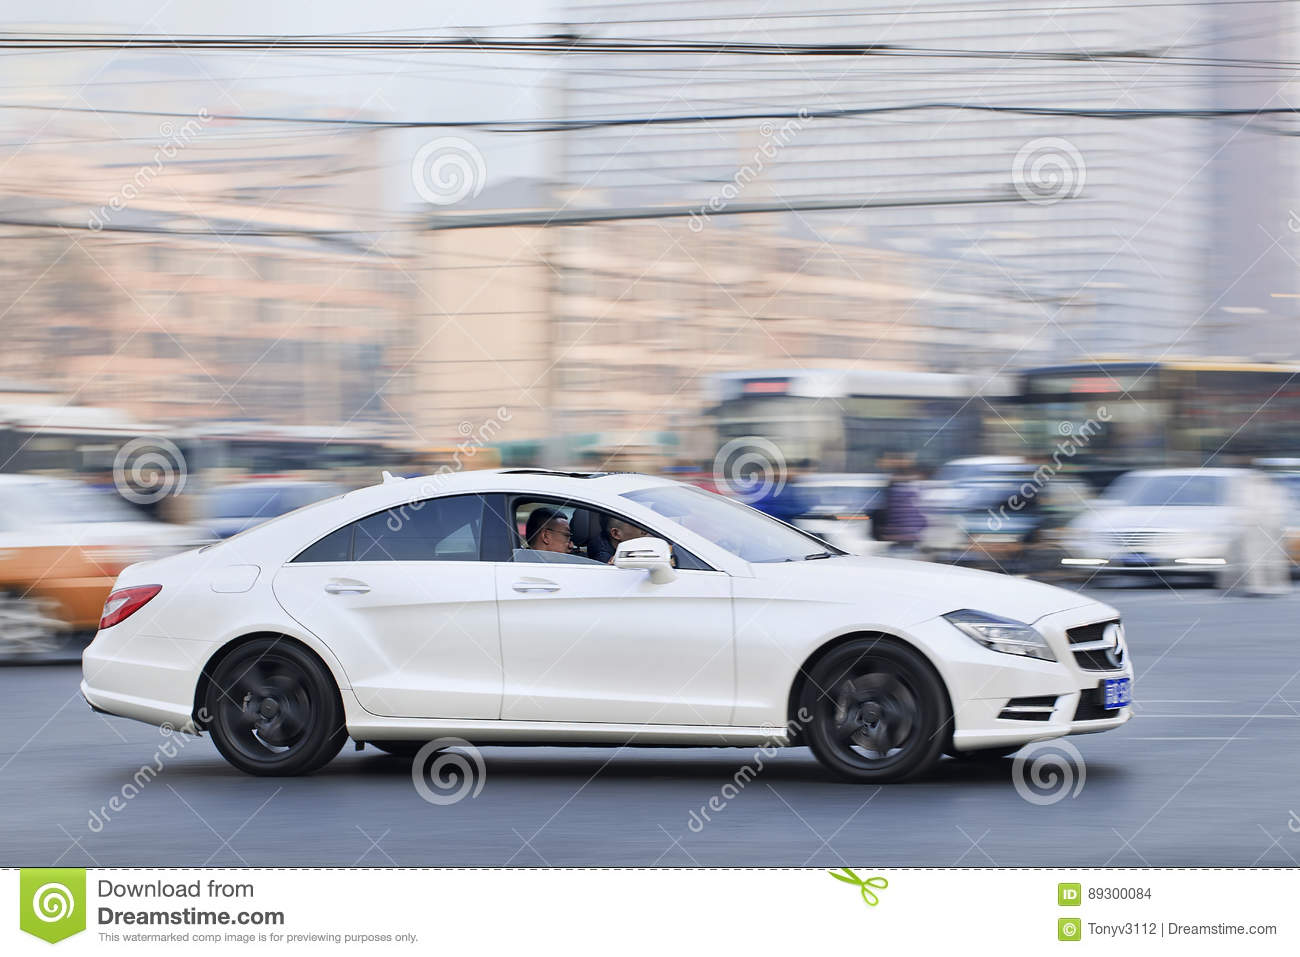 White Mercedes Benz Sls55 Amg In Busy City Center Beijing China Engineering